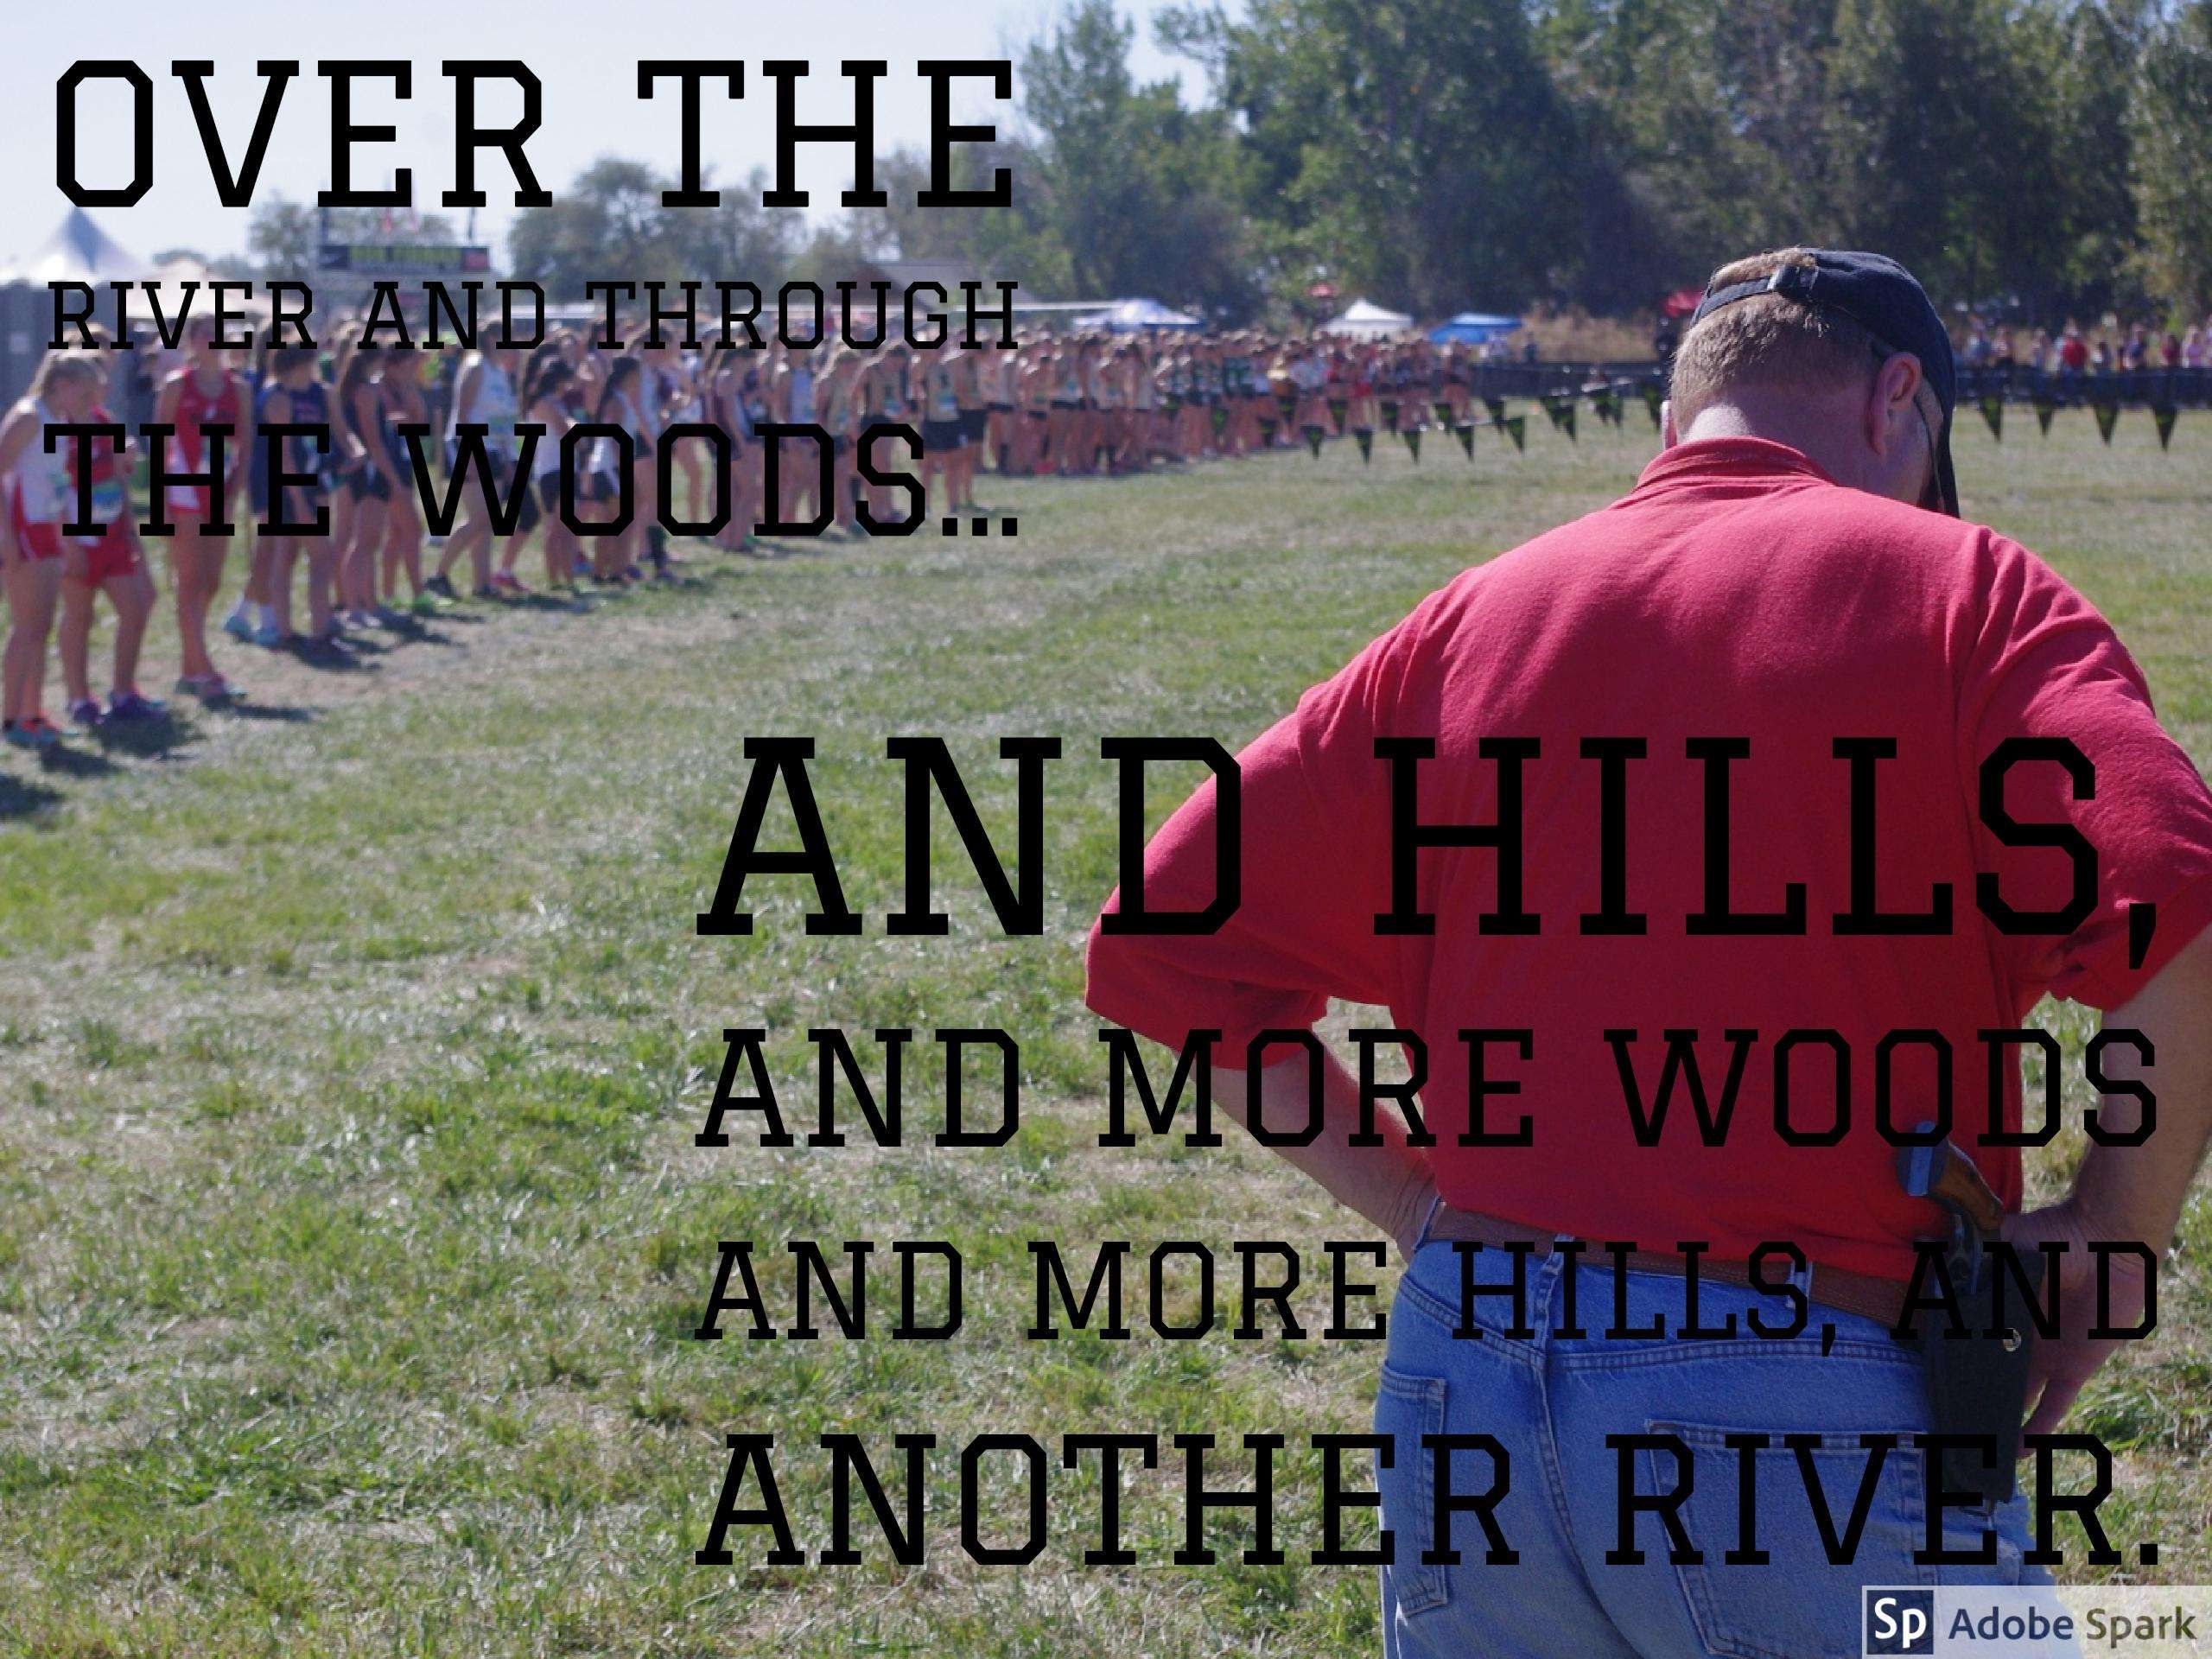 Cross Country Quotes Cc Cc Quotes Cross Country Cross Country Quotes Run Running